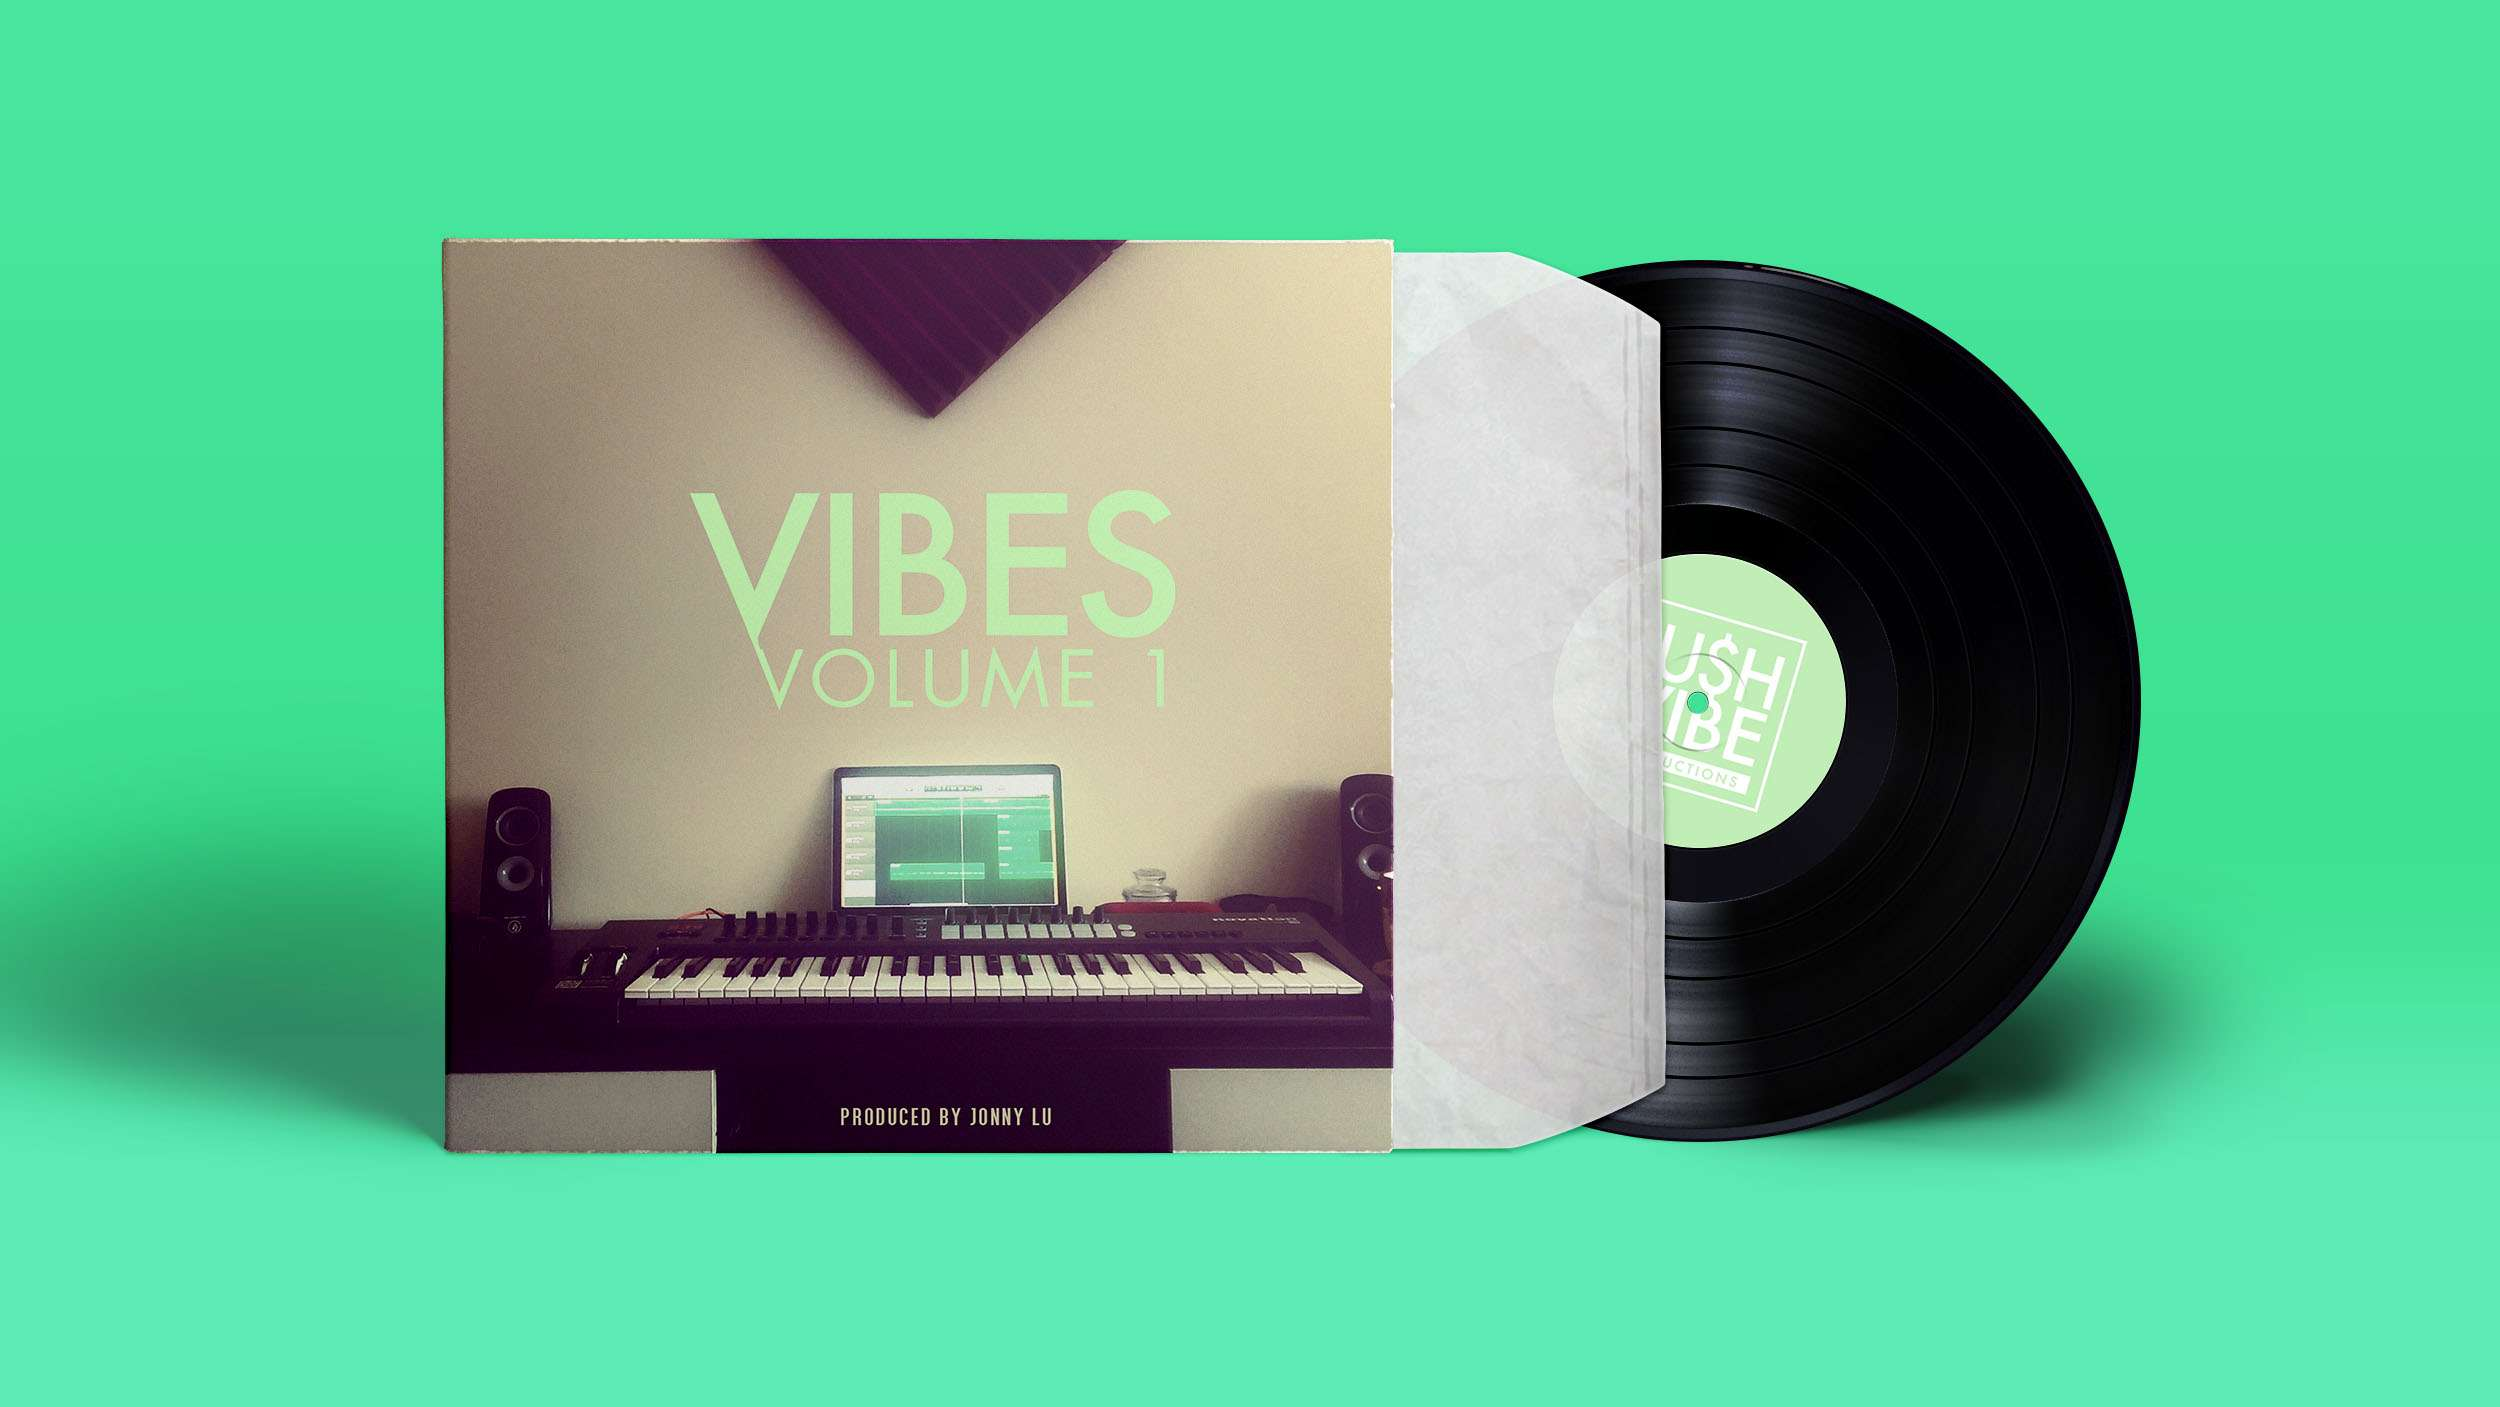 Vinyl packaging design using image of music studio, including a keyboard, speakers, laptop, and soundproofing.